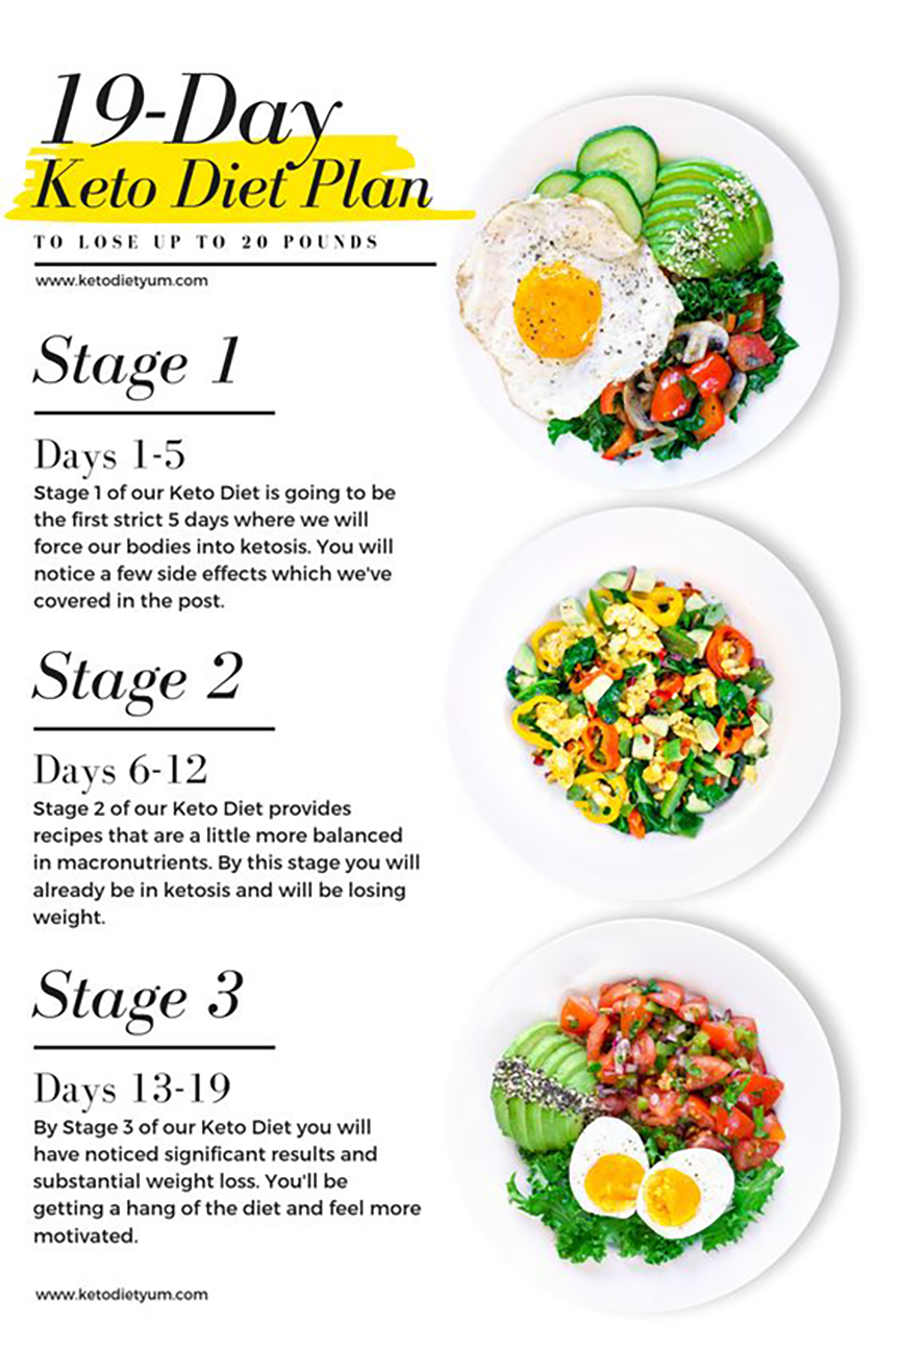 Photo of 19-Day Keto Diet Meal Plan and Menu for Beginners Weight Loss #ketodietforbeginn…